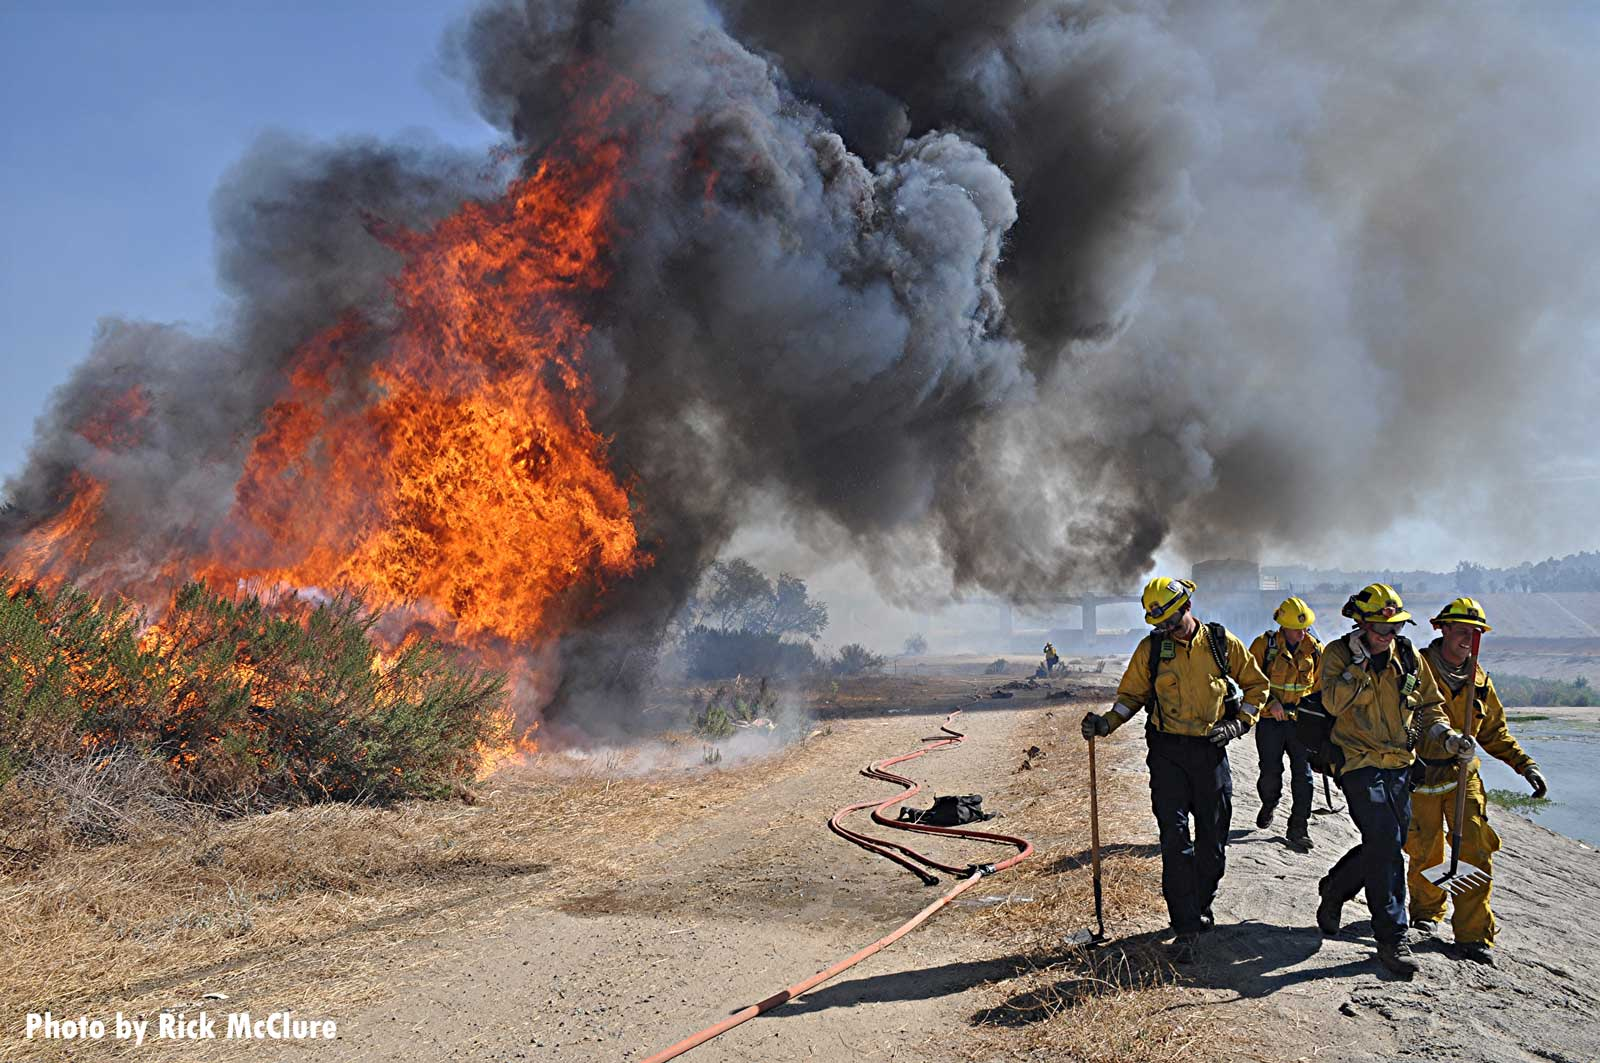 City of Los Angeles firefighters working at a raging vegetation fire